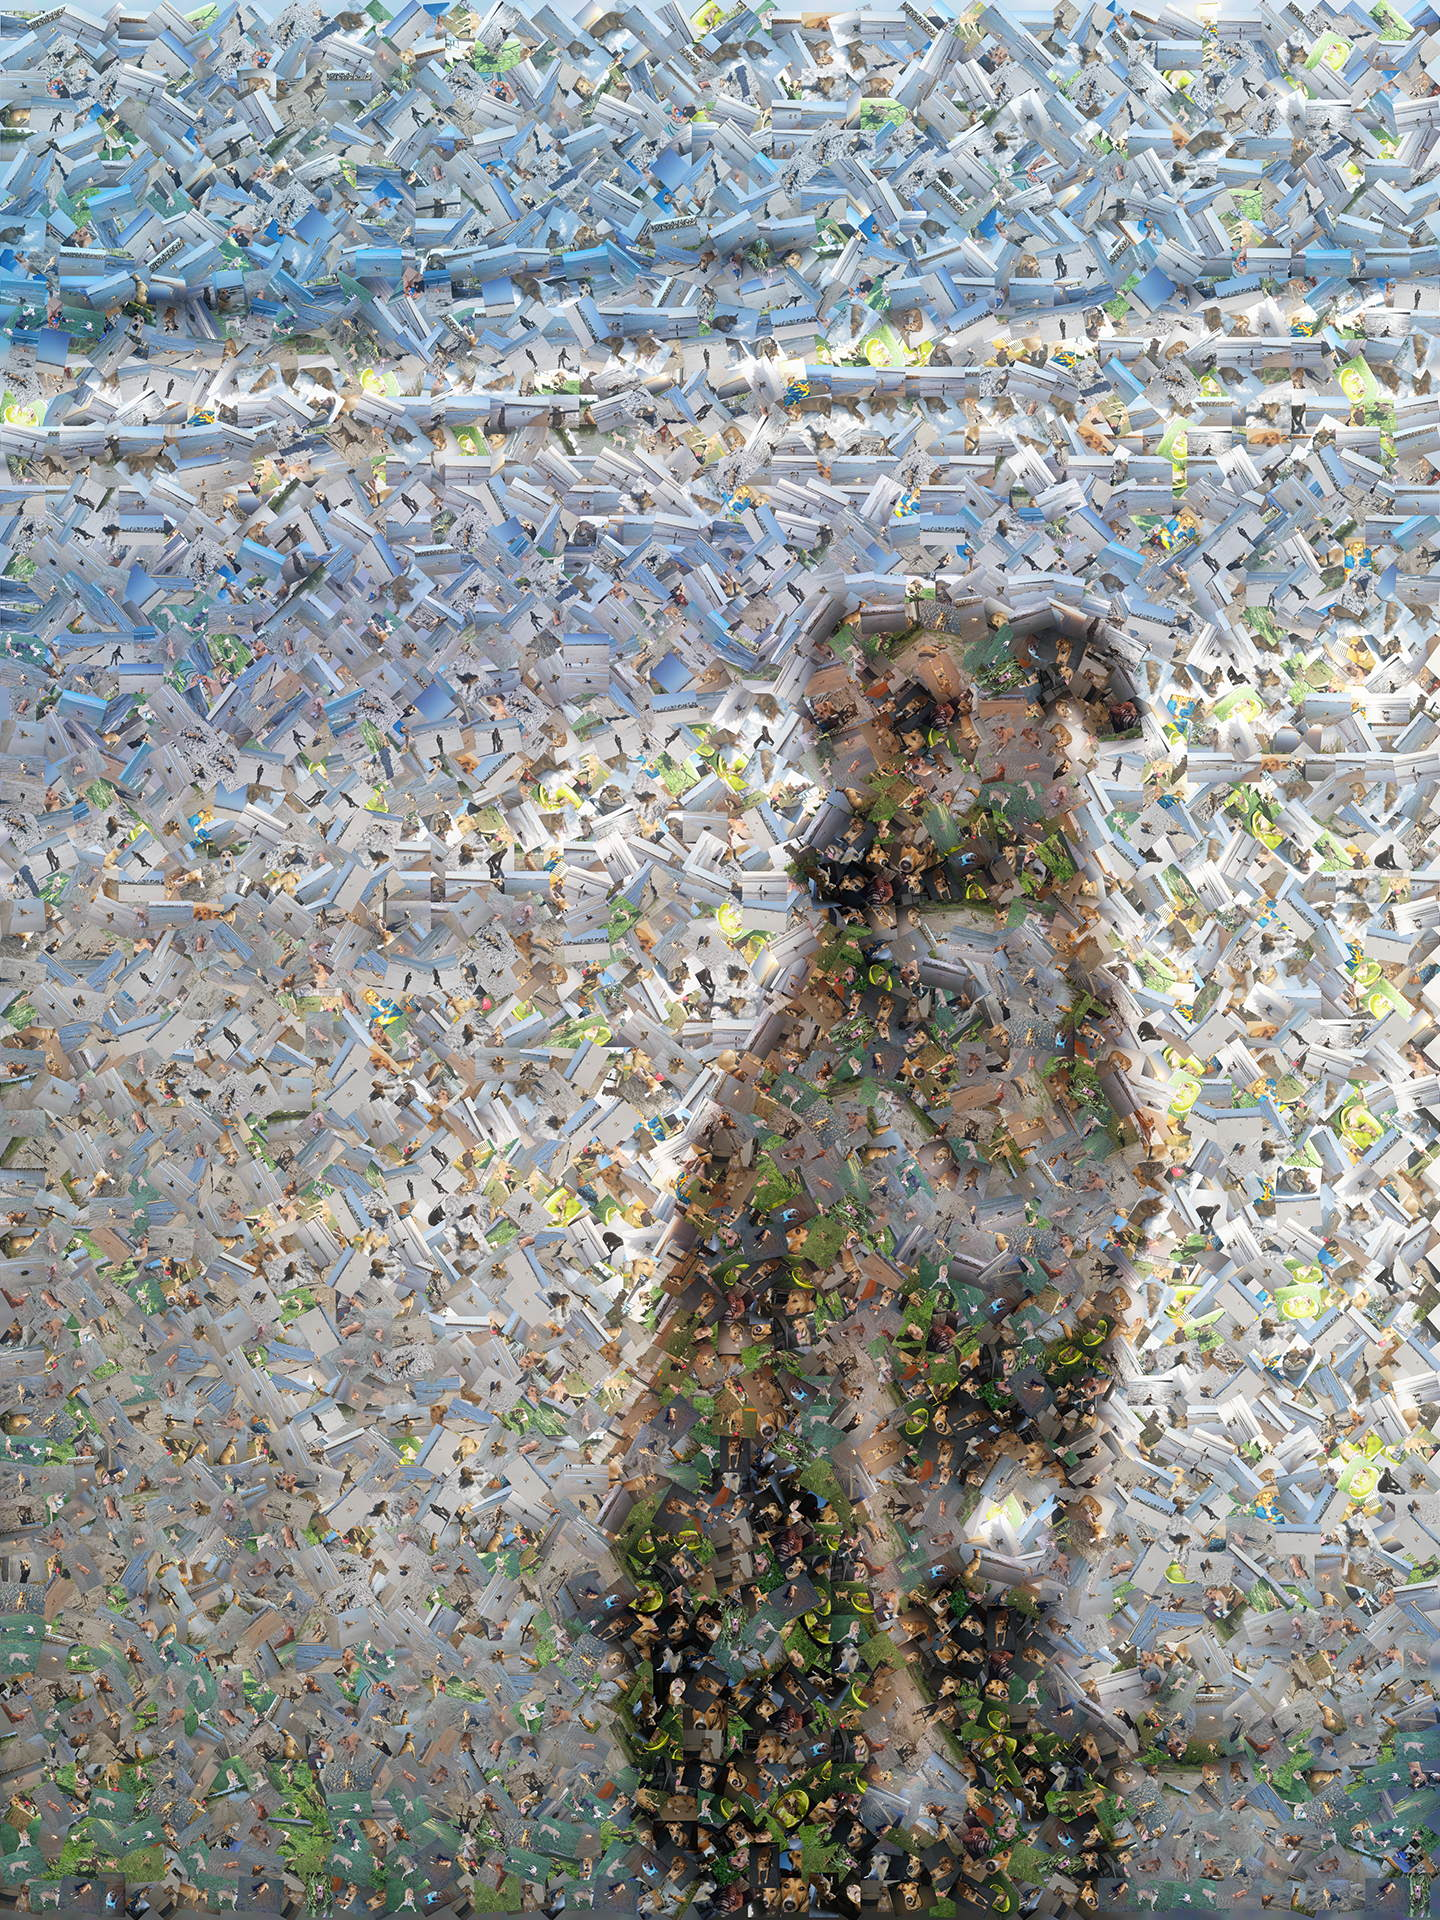 photo mosaic a serene dog sitting on the beach, created using 289 photos